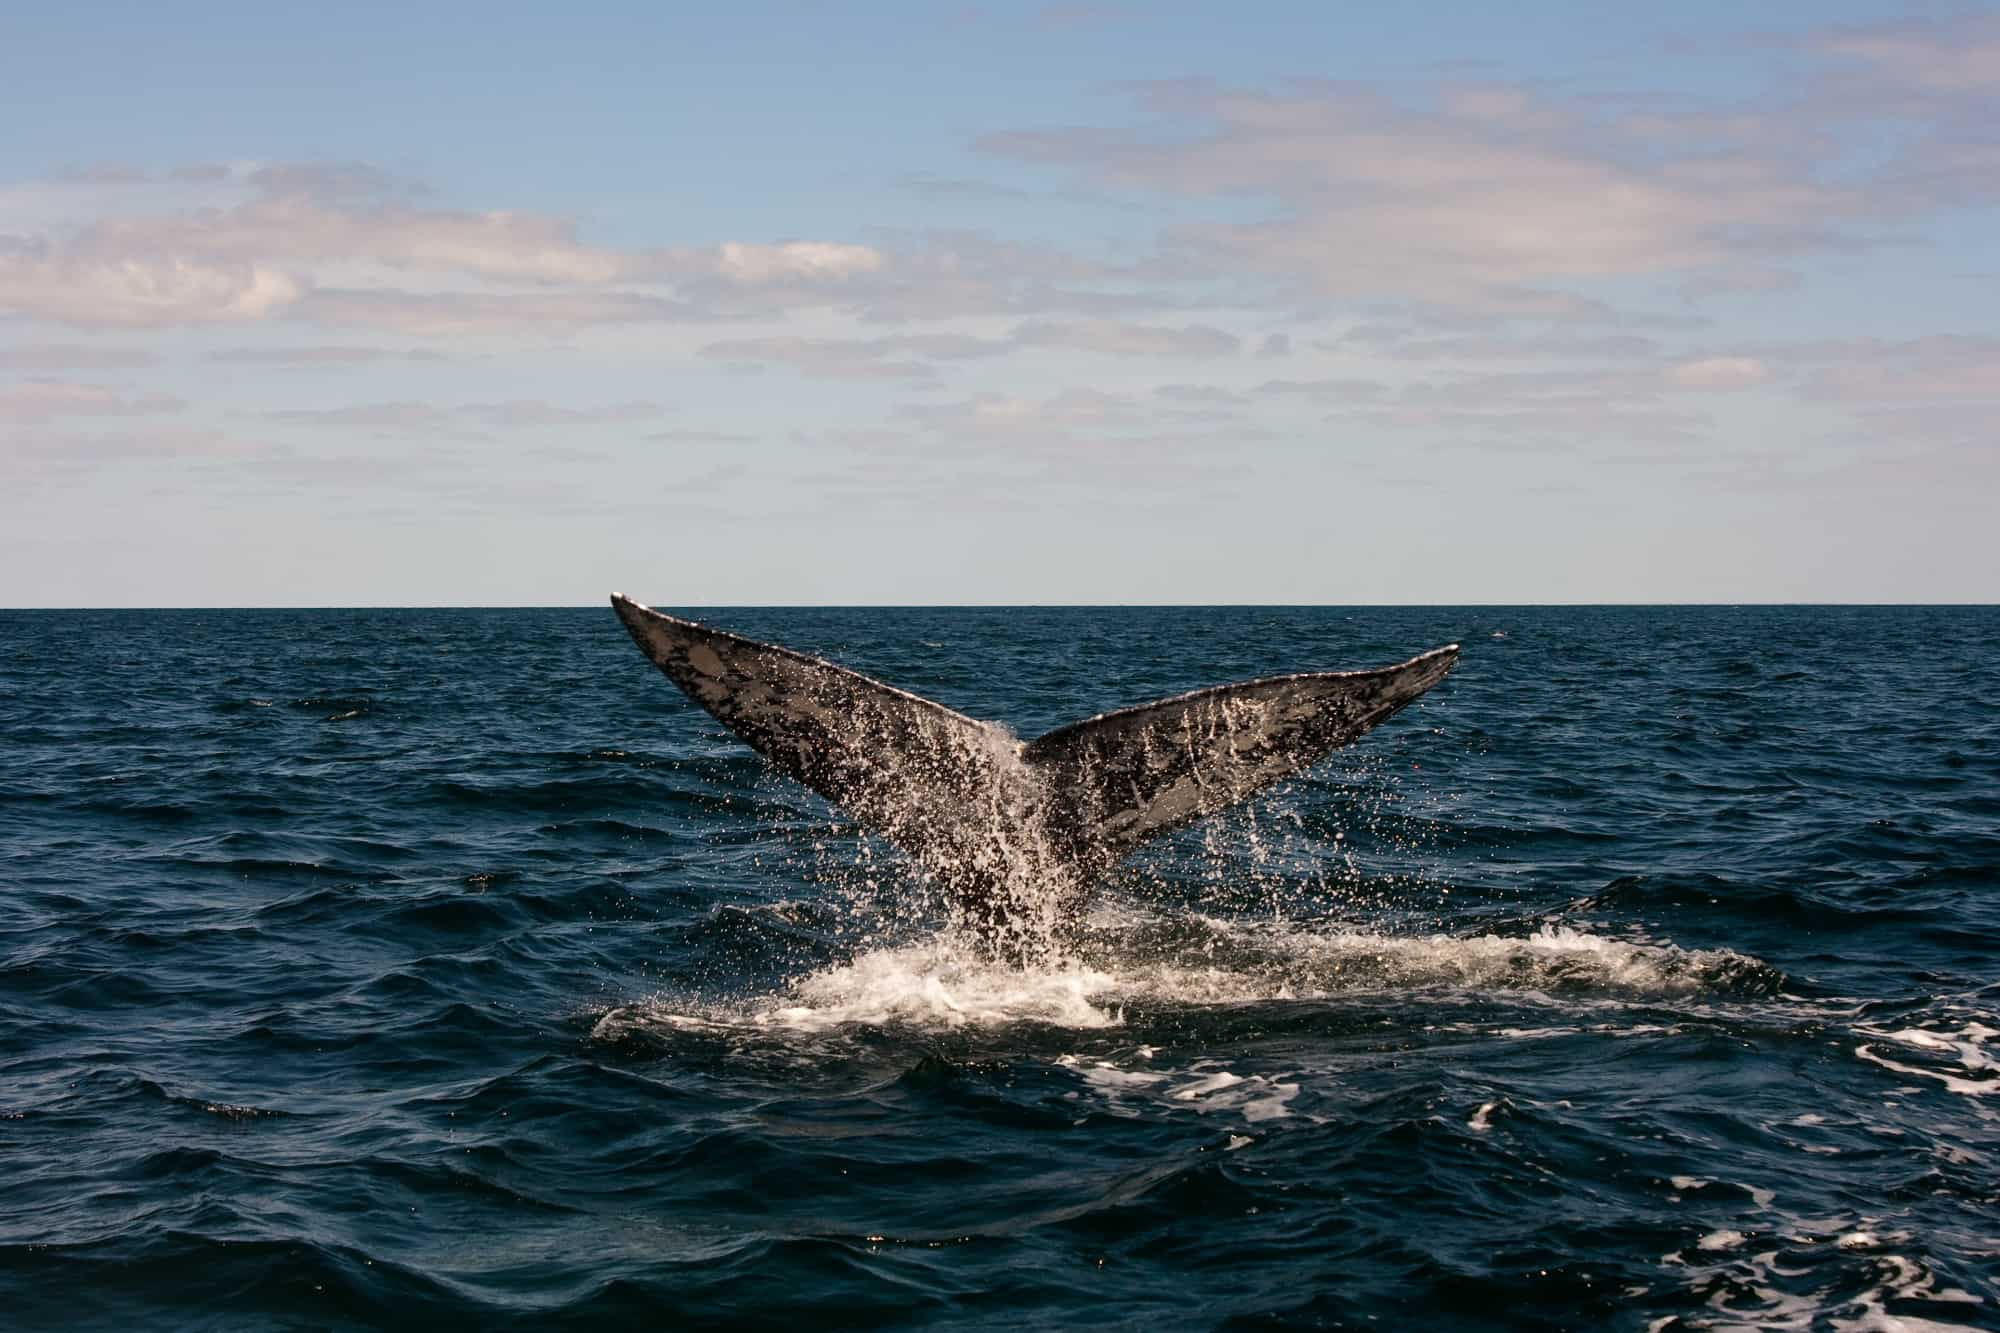 Trekaroo's Guide to West Coast Whale Watching